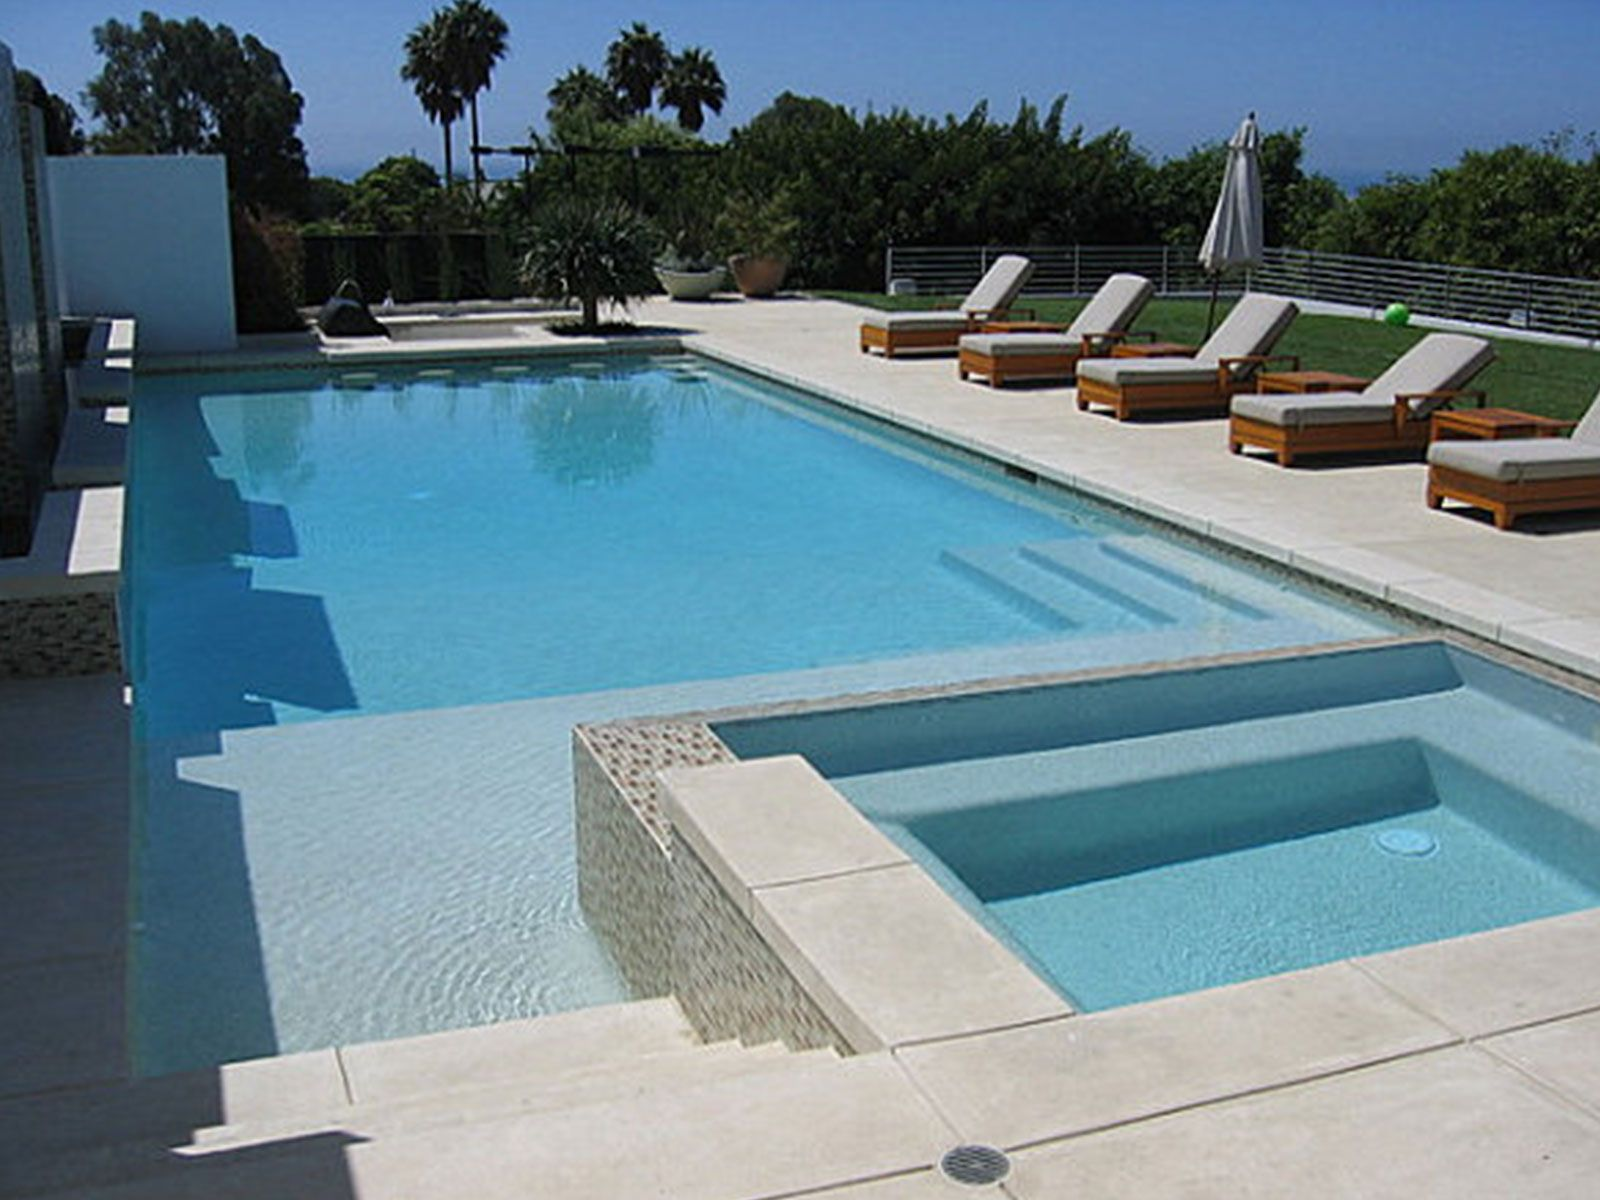 Simple swimming pool design image modern creative swimming for Backyard swimming pool designs